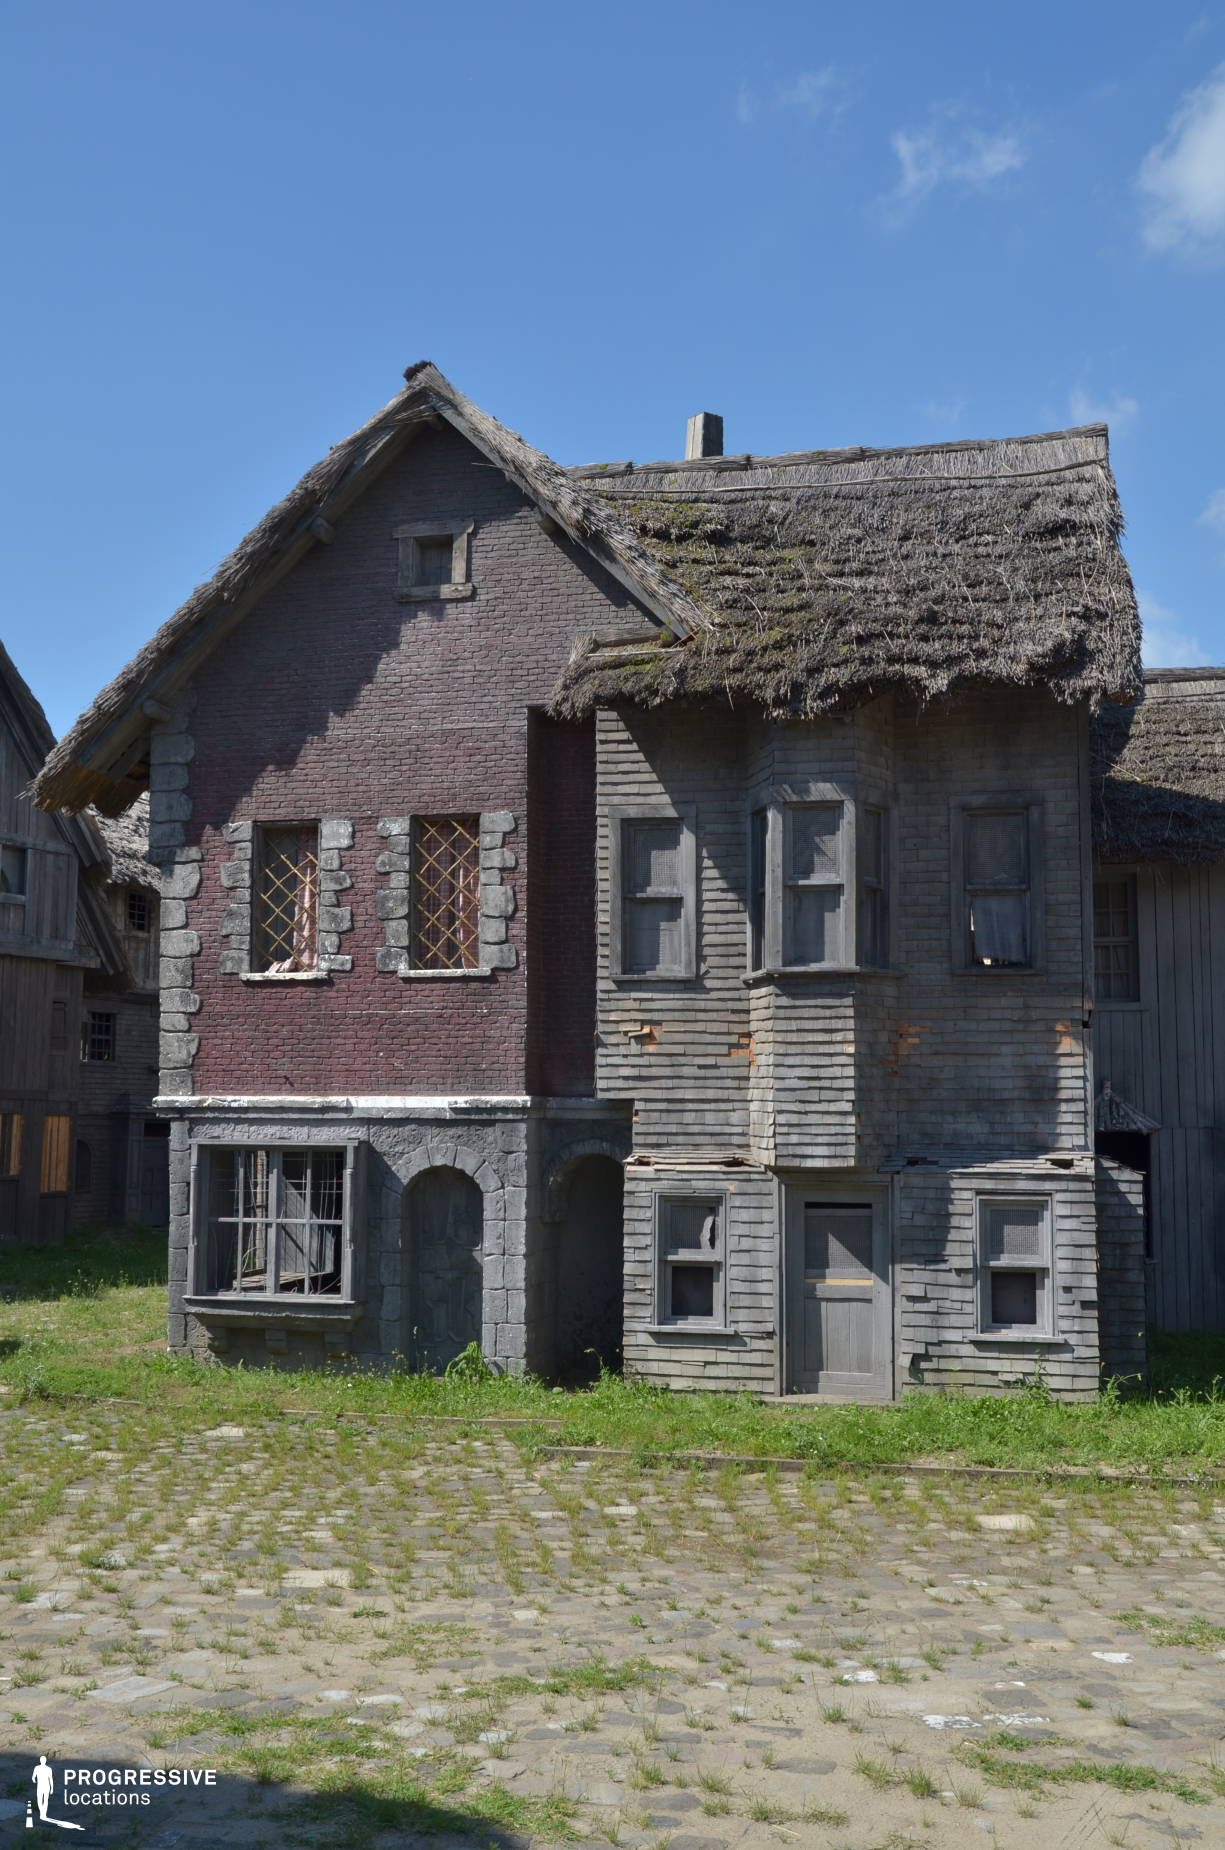 Medieval Town Backlot: Two Storey Houses